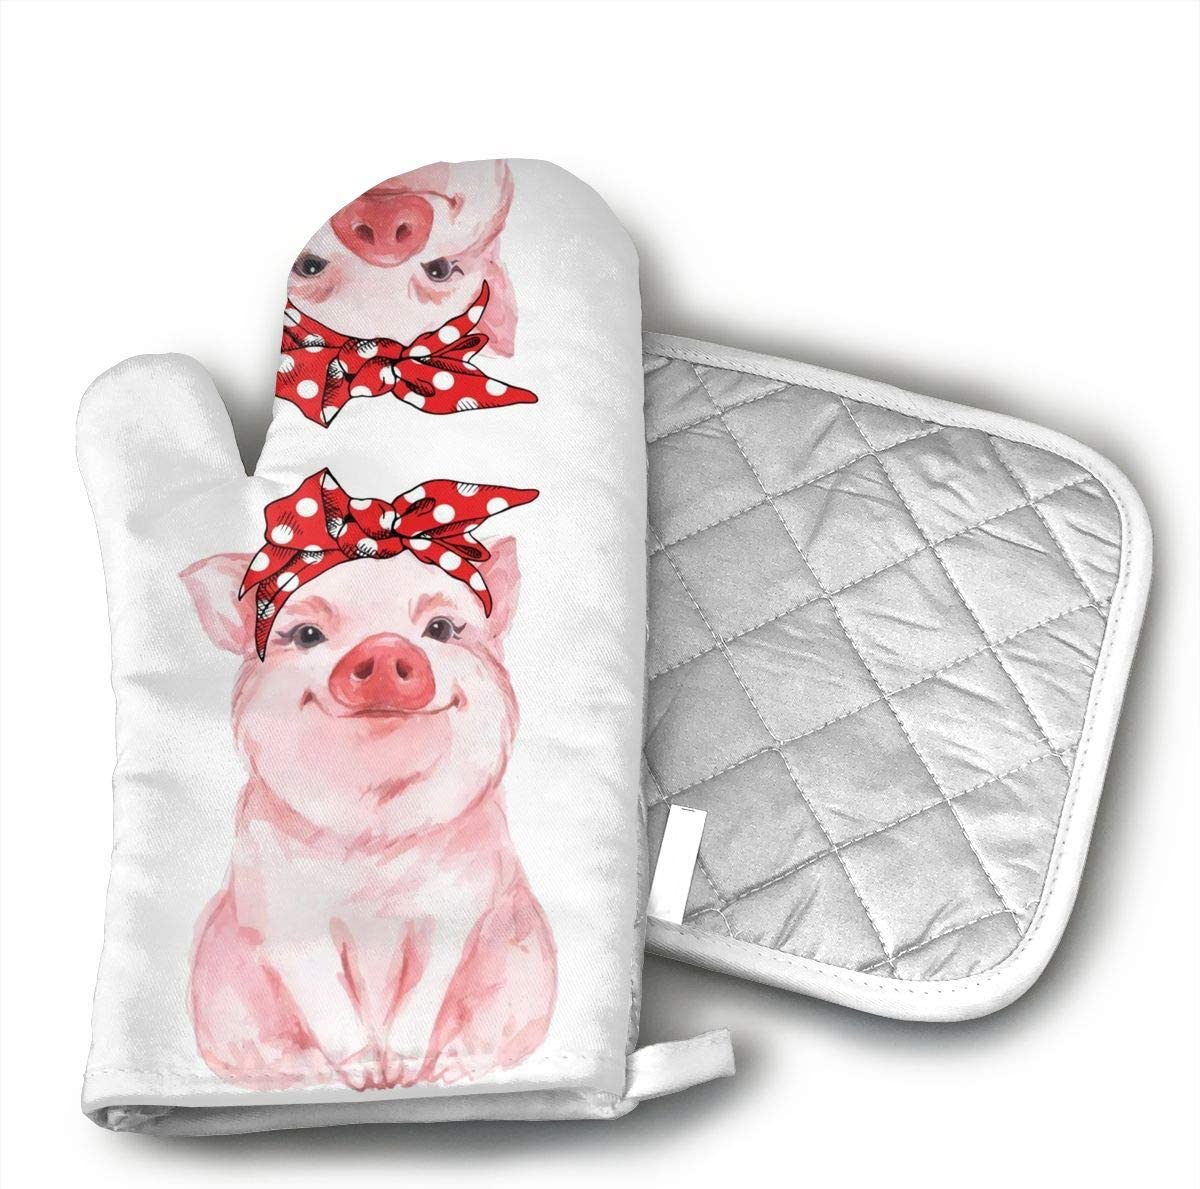 Pink Farm Funny Pig Cute Watercolor Baby Painting Piglet Kawaii Oven Mitts and Potholders (2-Piece Sets) - Kitchen Set with Cotton Heat Resistant,Oven Gloves for BBQ Cooking Baking Grilling